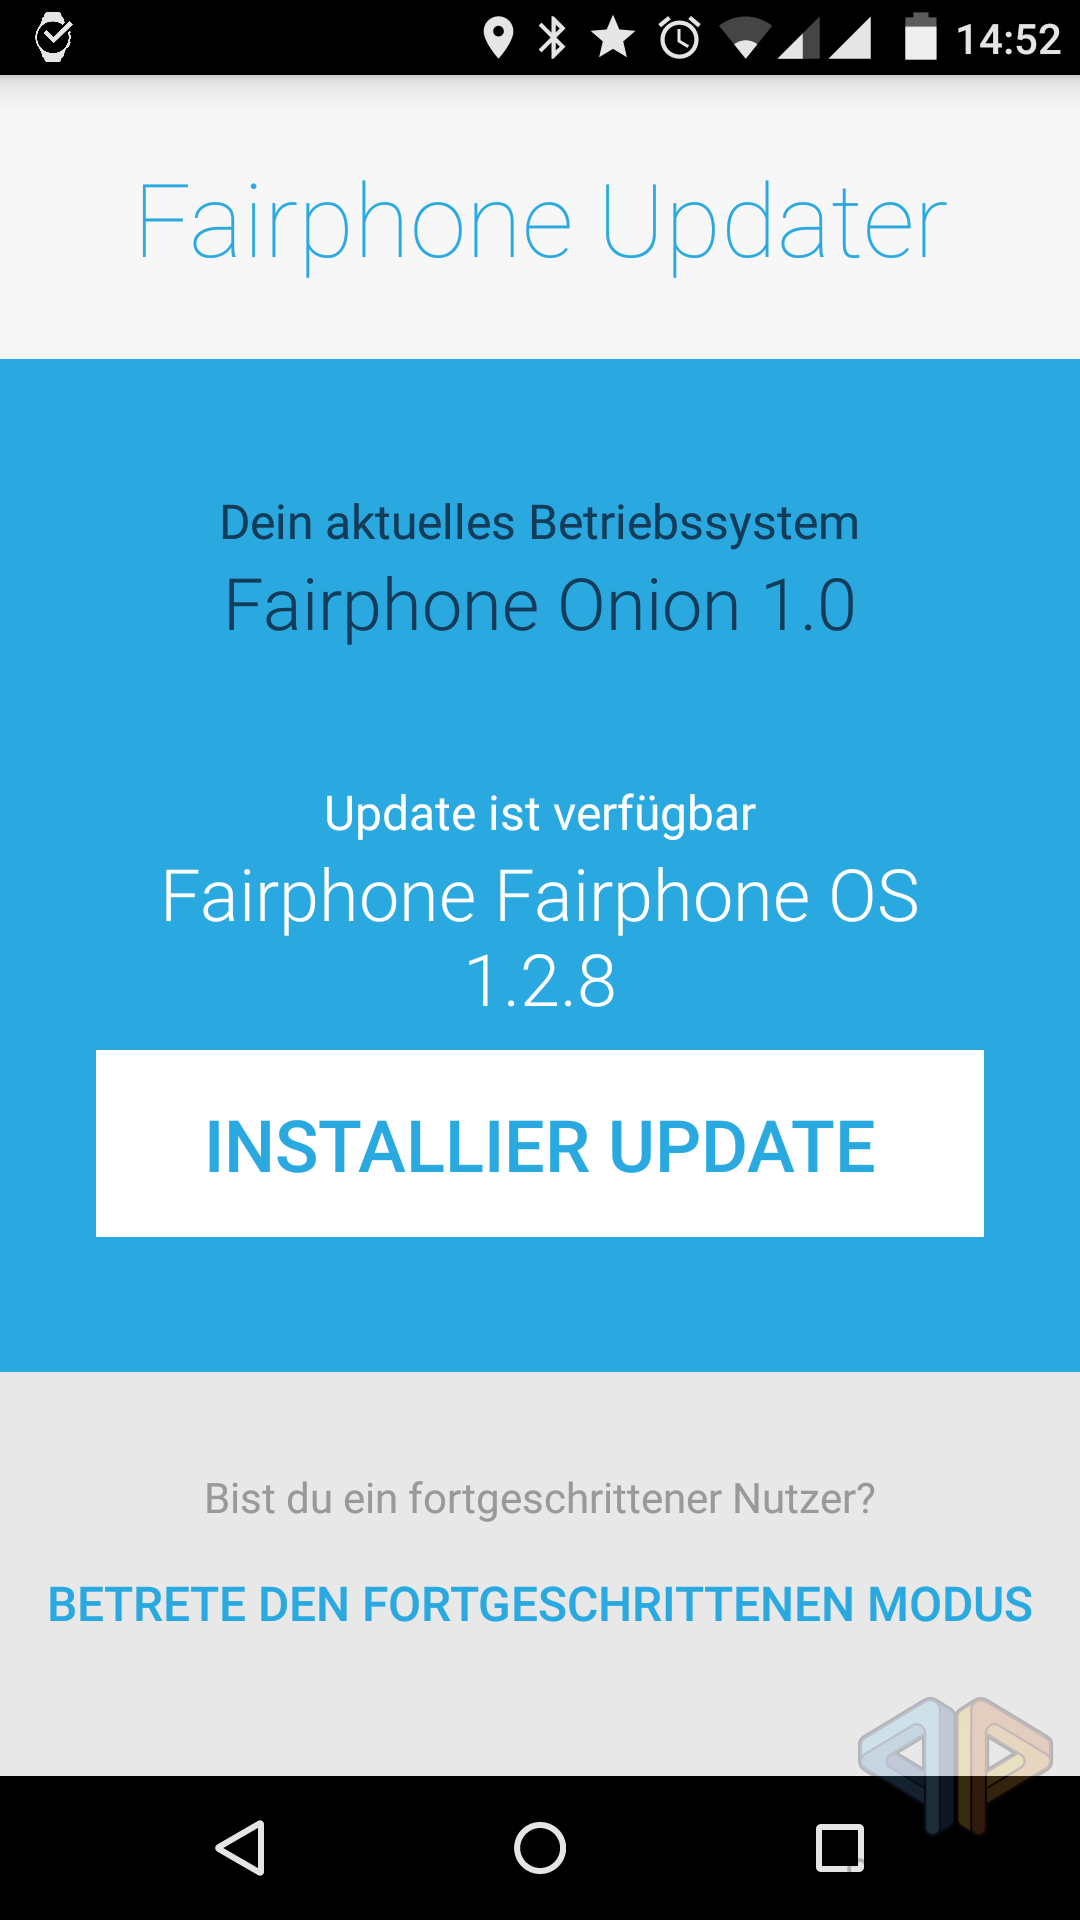 Fairphone Update 1.2.8